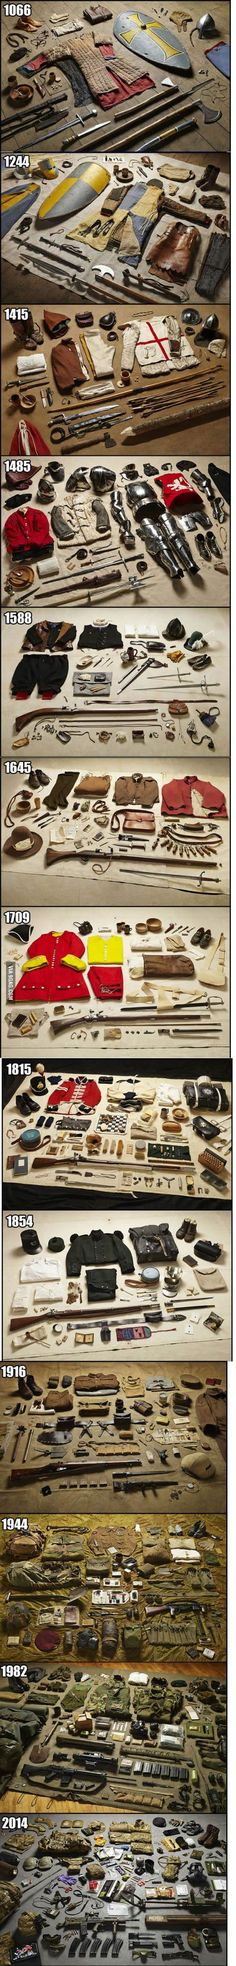 War outfits; evolution from 1066 to 2014